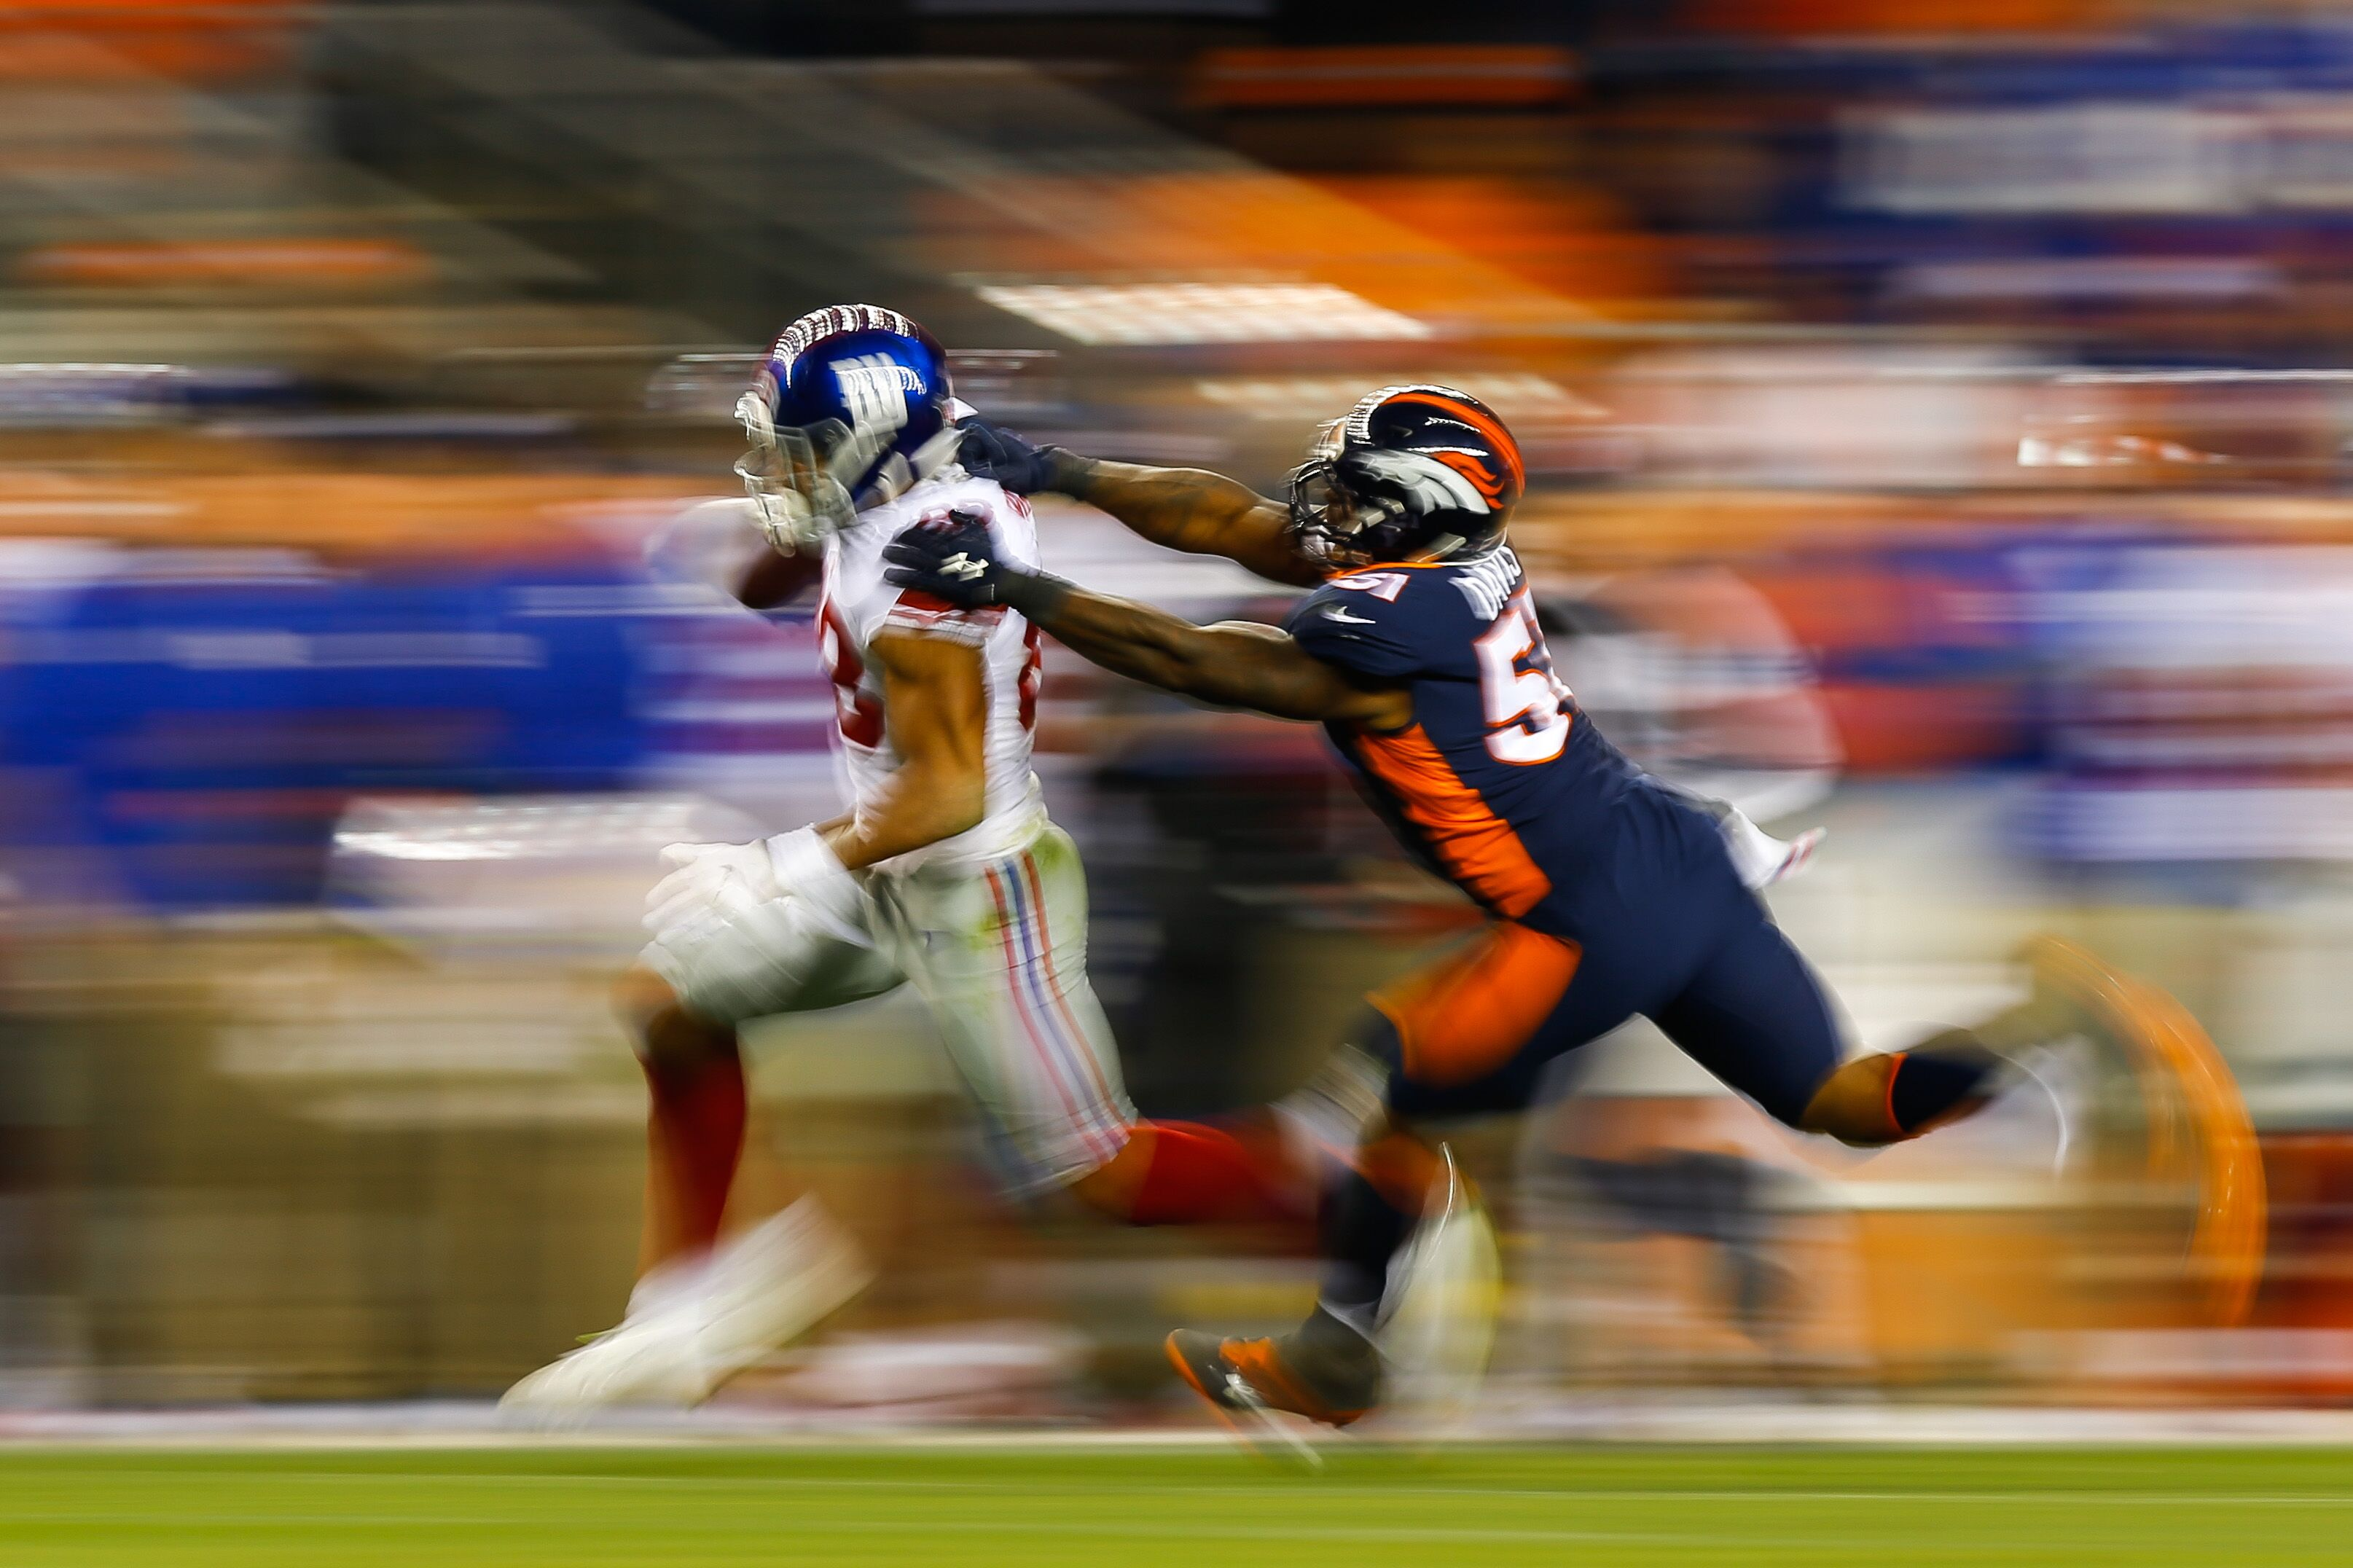 861785012-new-york-giants-v-denver-broncos.jpg